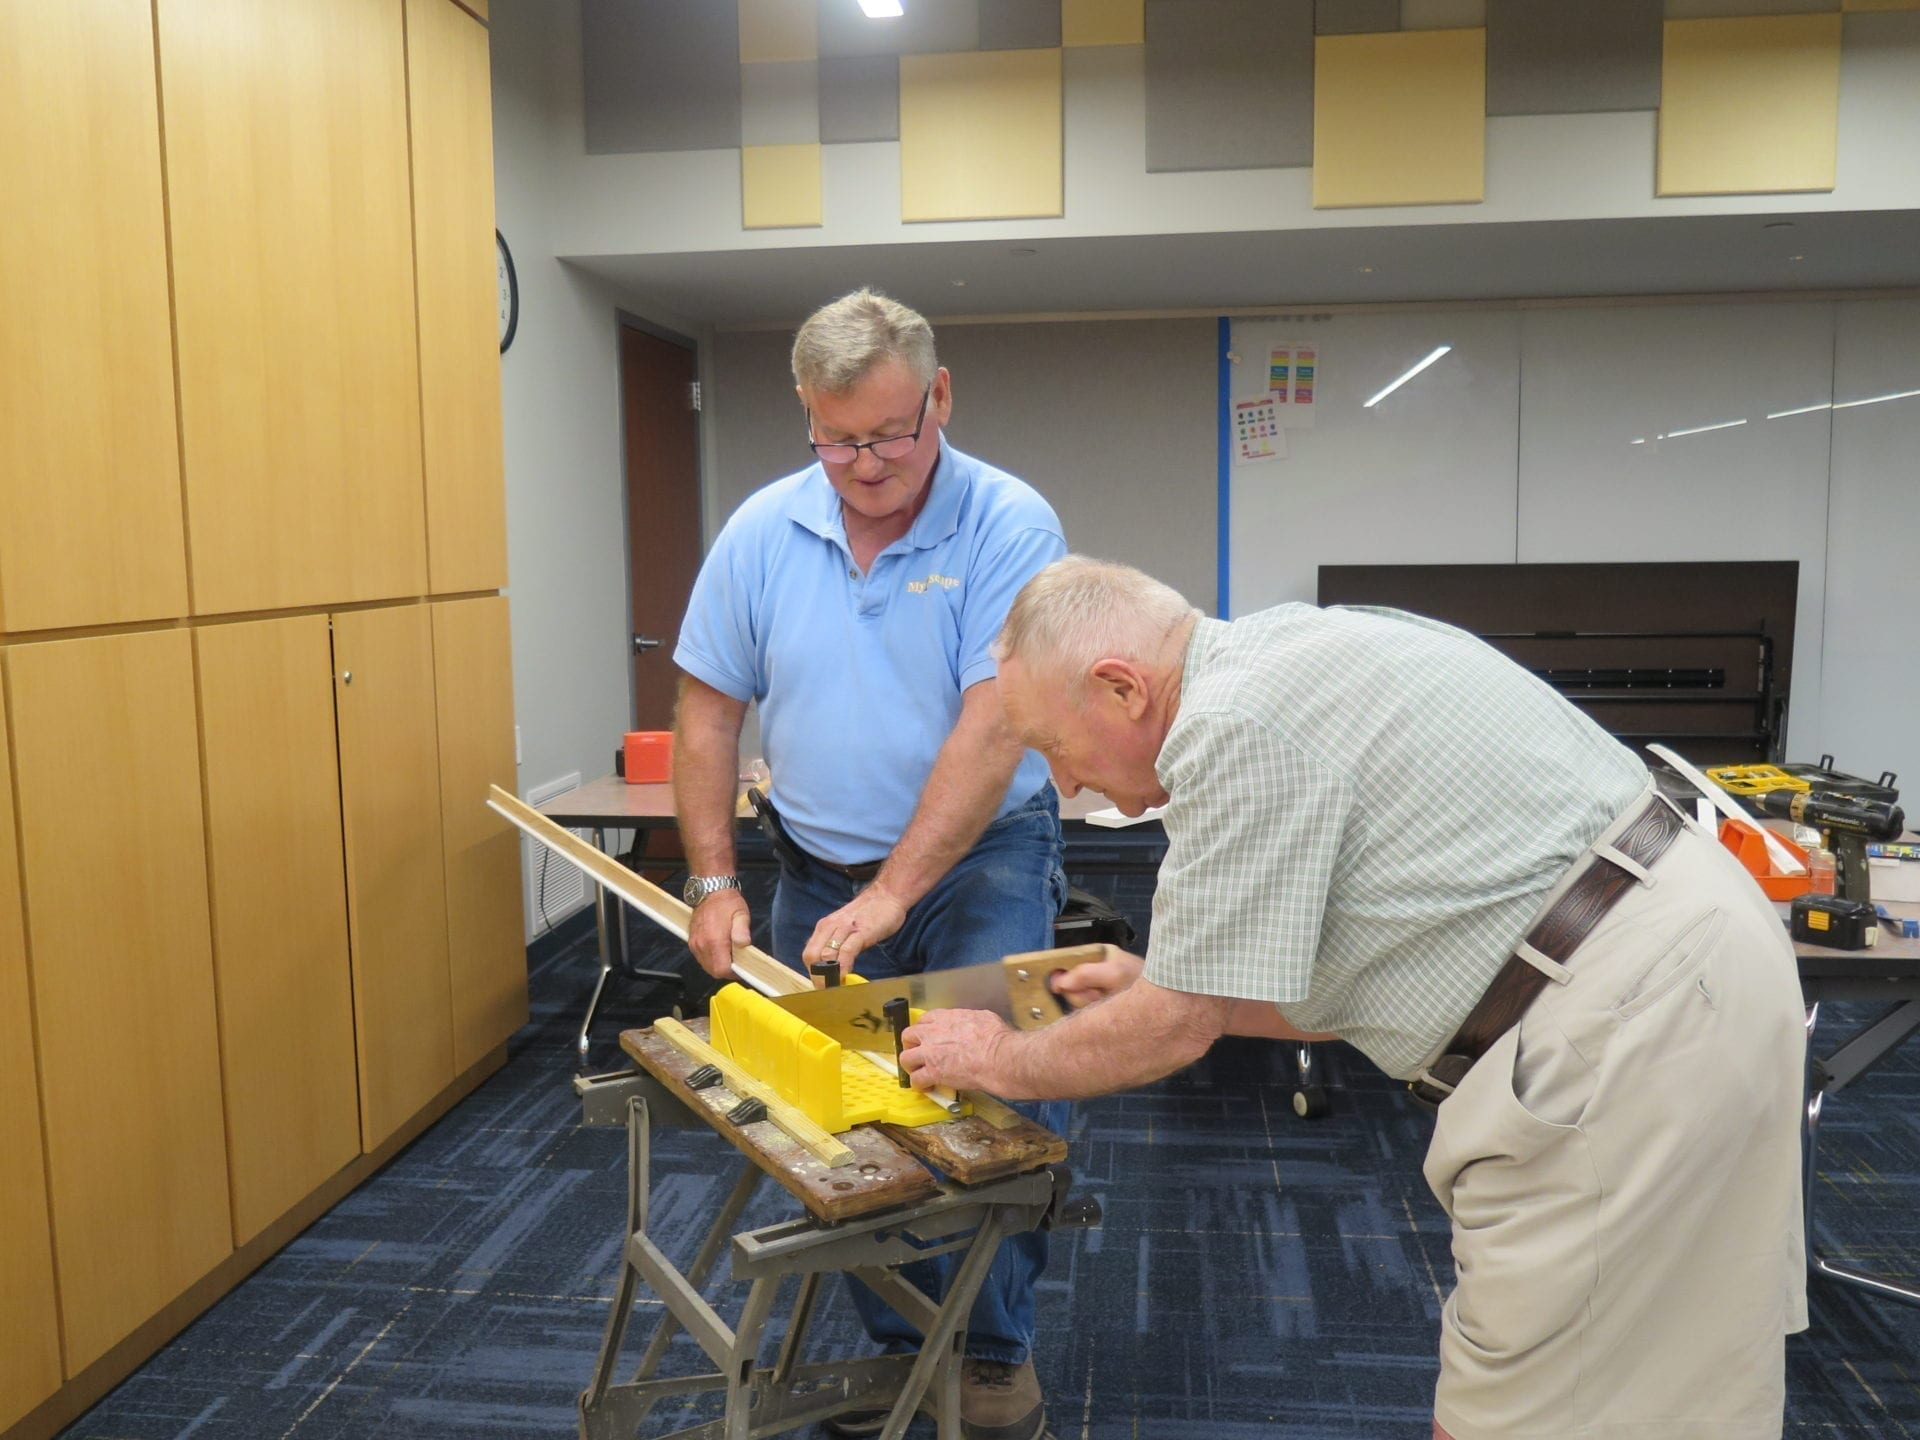 Brian showing a student how to cut weather stripping